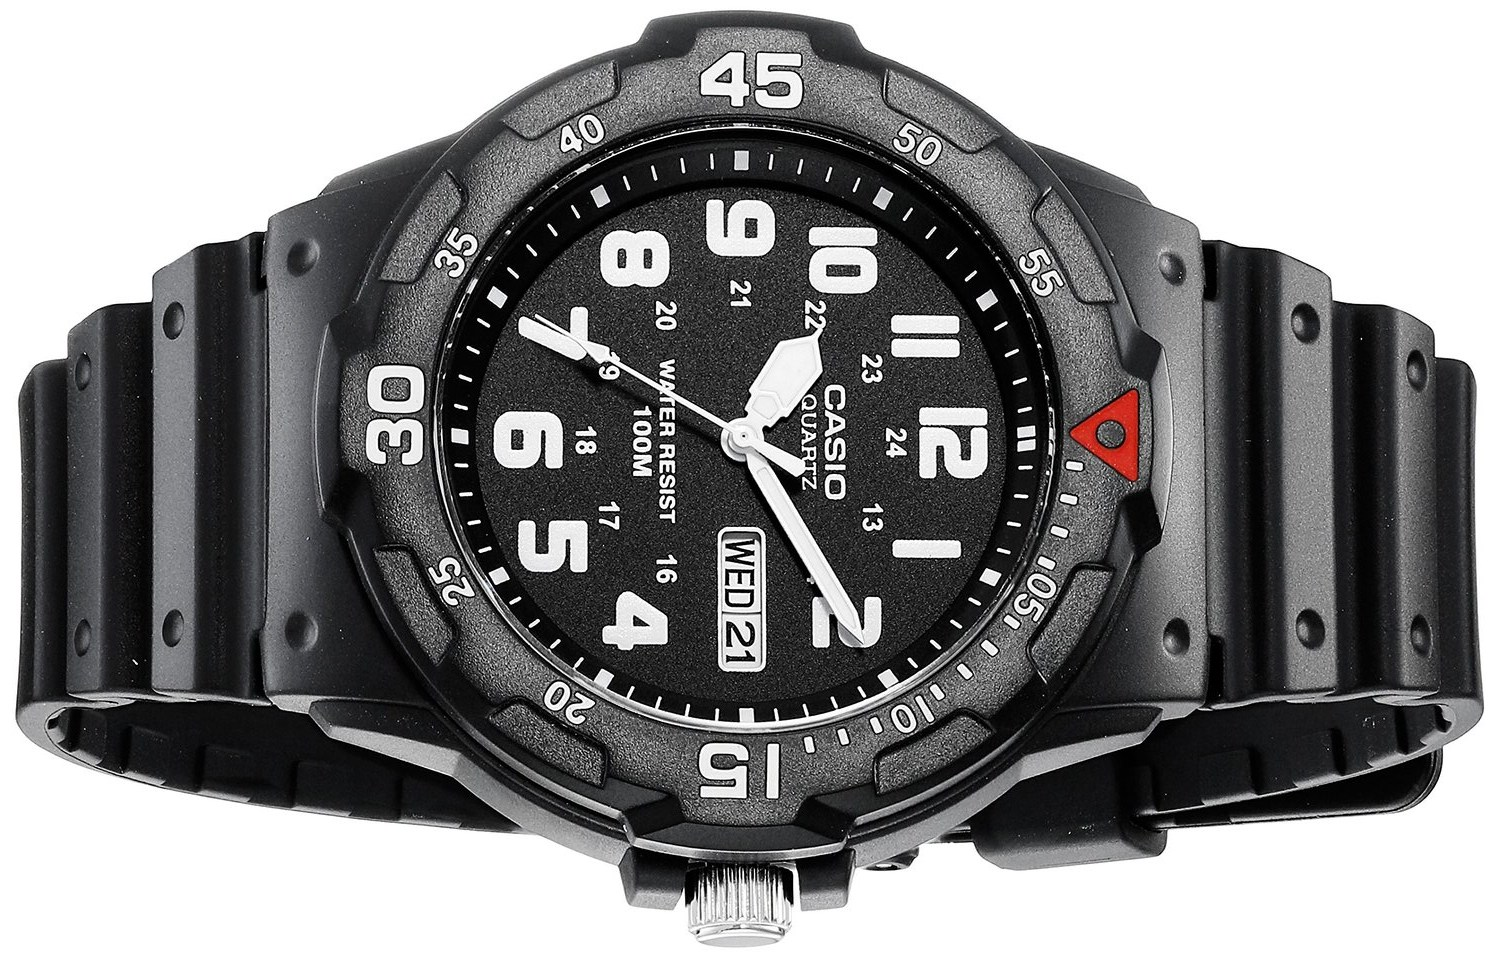 sln watch fifa s chrono men scuba us watches bulgari limited fxa pid edition diagono professional